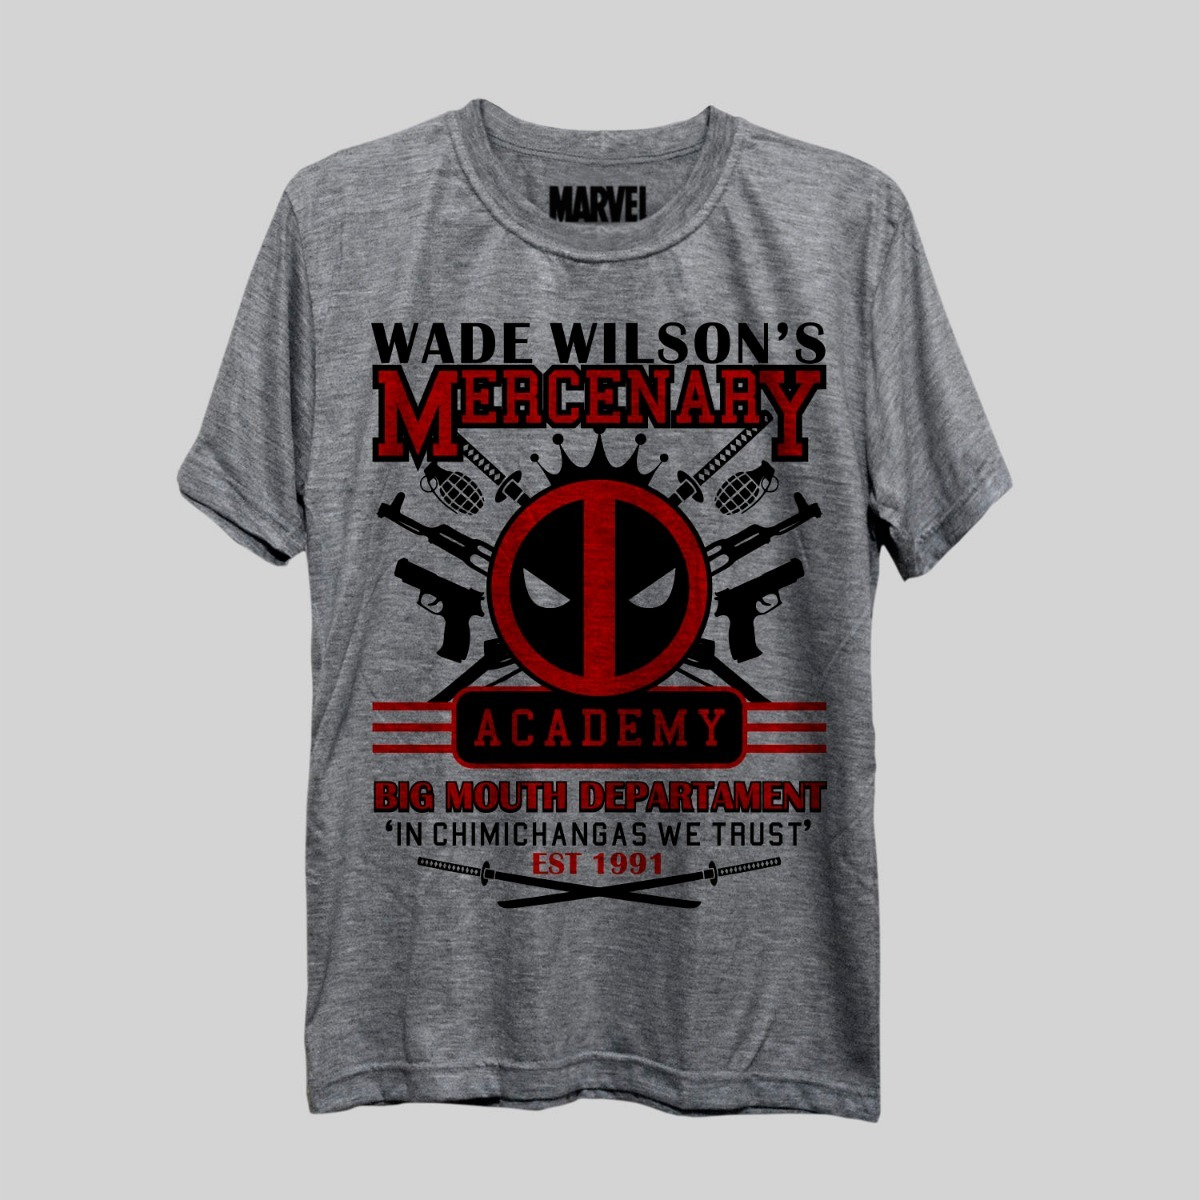 a3655feda camiseta deadpool mercenary academy marvel comics hq freekz. Carregando  zoom.